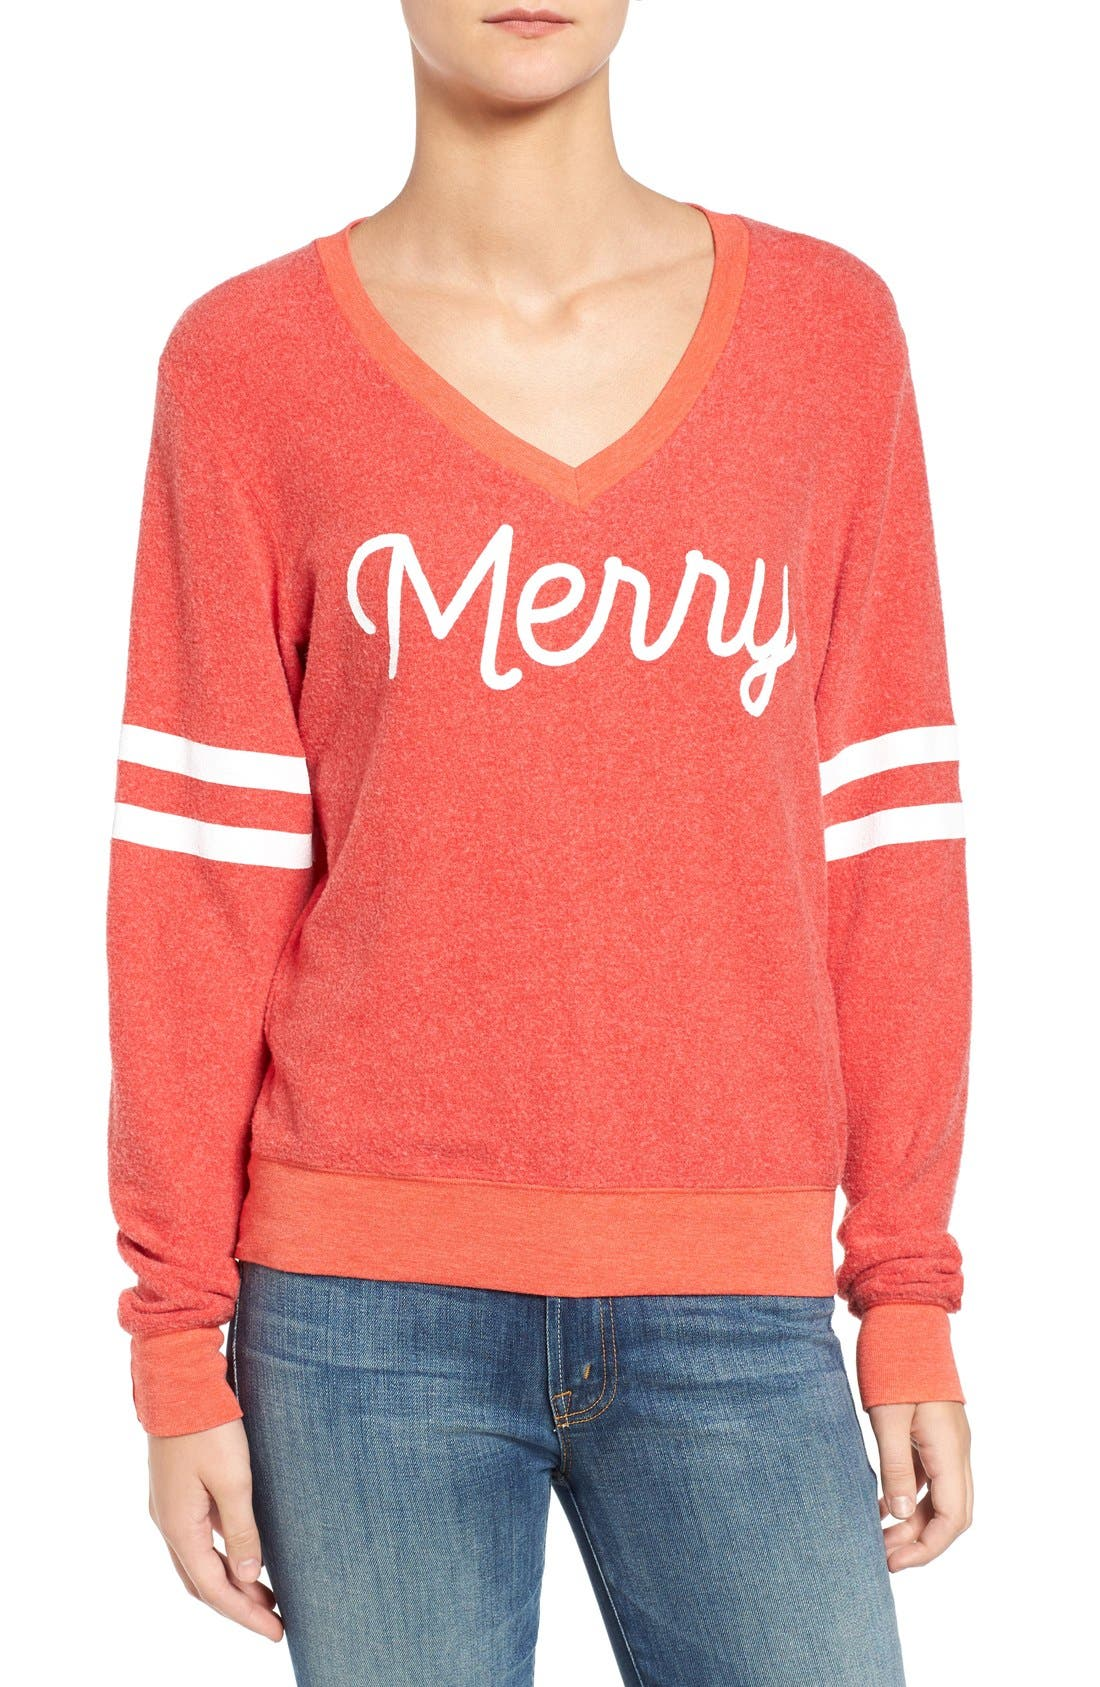 Alternate Image 1 Selected - Wildfox Baggy Beach Jumper - Merry Pullover